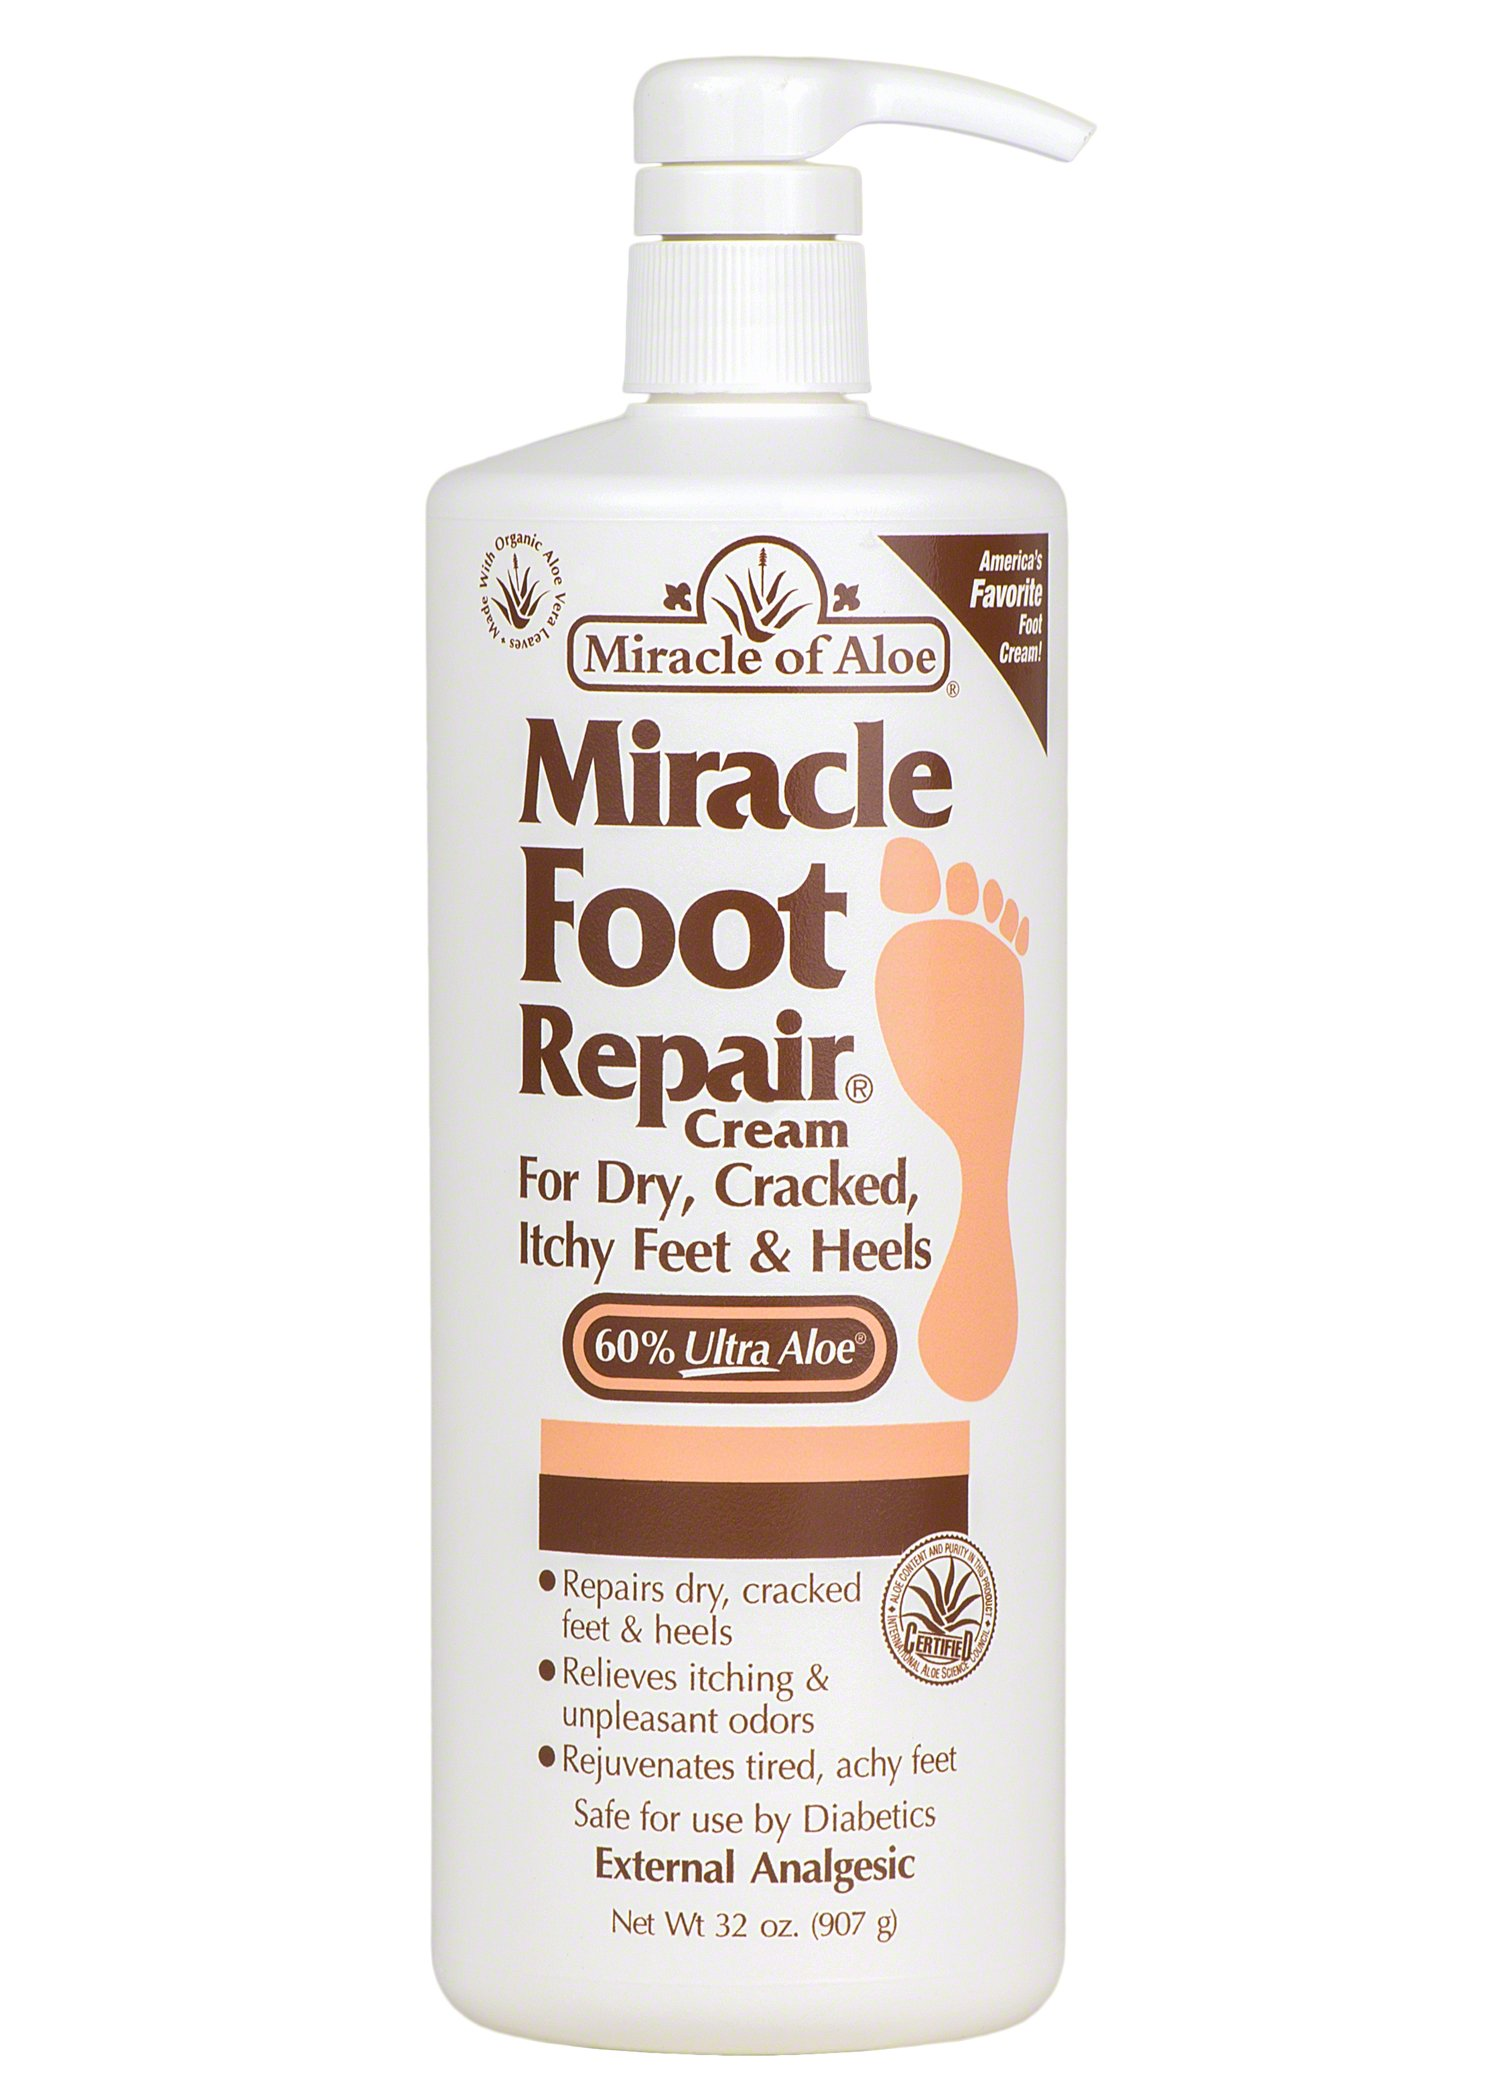 Miracle of Aloe, Miracle Foot Repair Cream with 60% UltraAloe 32 ounce bottle with pump